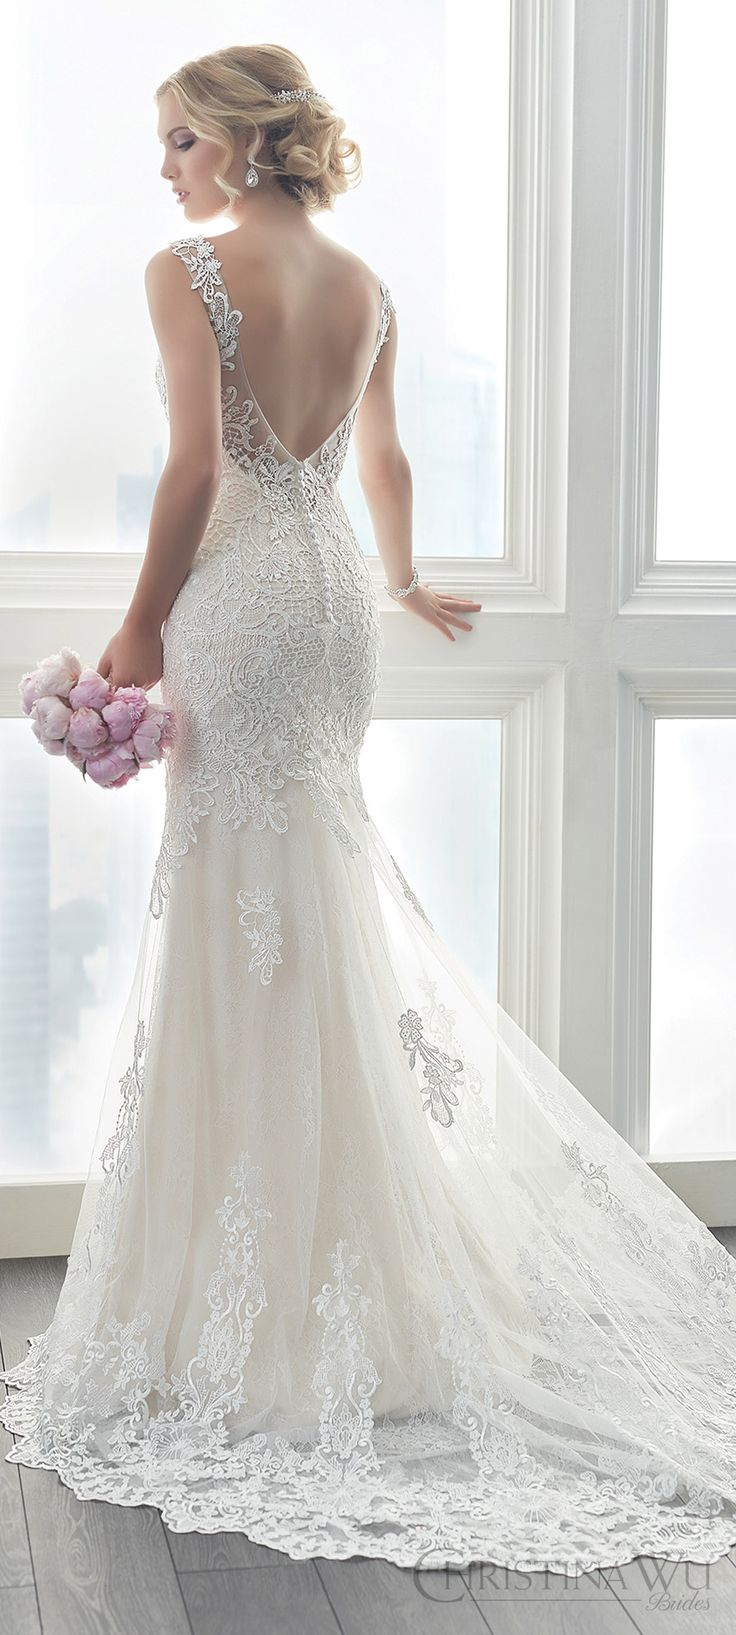 christina wu brides spring 2017 bridal sleeveless illusion straps vneck fully lace embellished trumpet wedding dress (15625) bv train romantic elegant